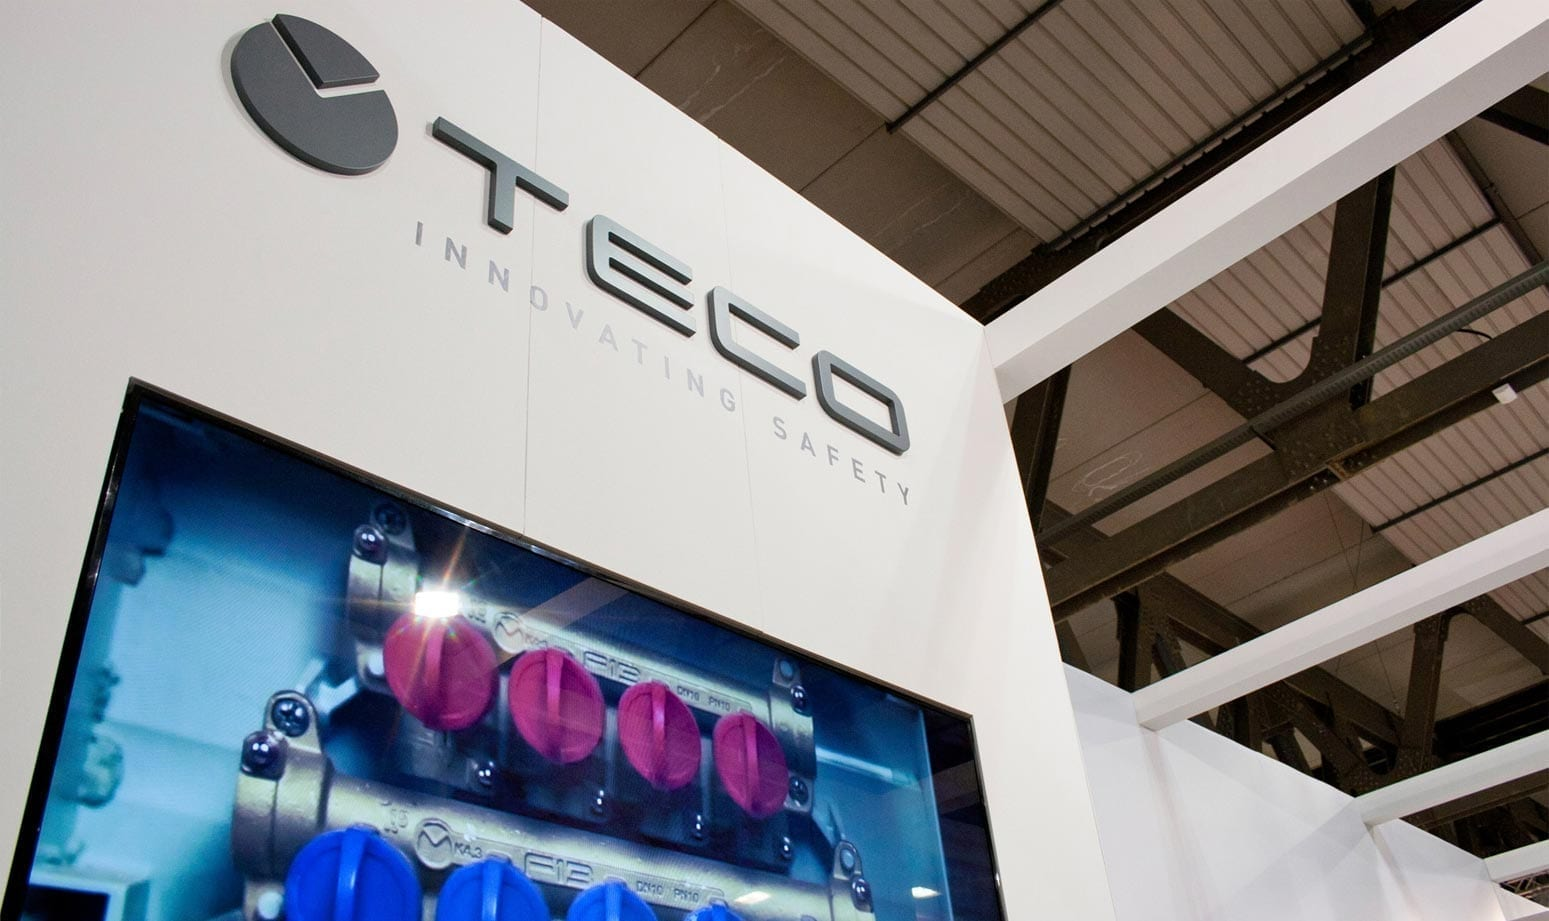 domenico_orefice_design_studio_environment_teco_mce_stand_01